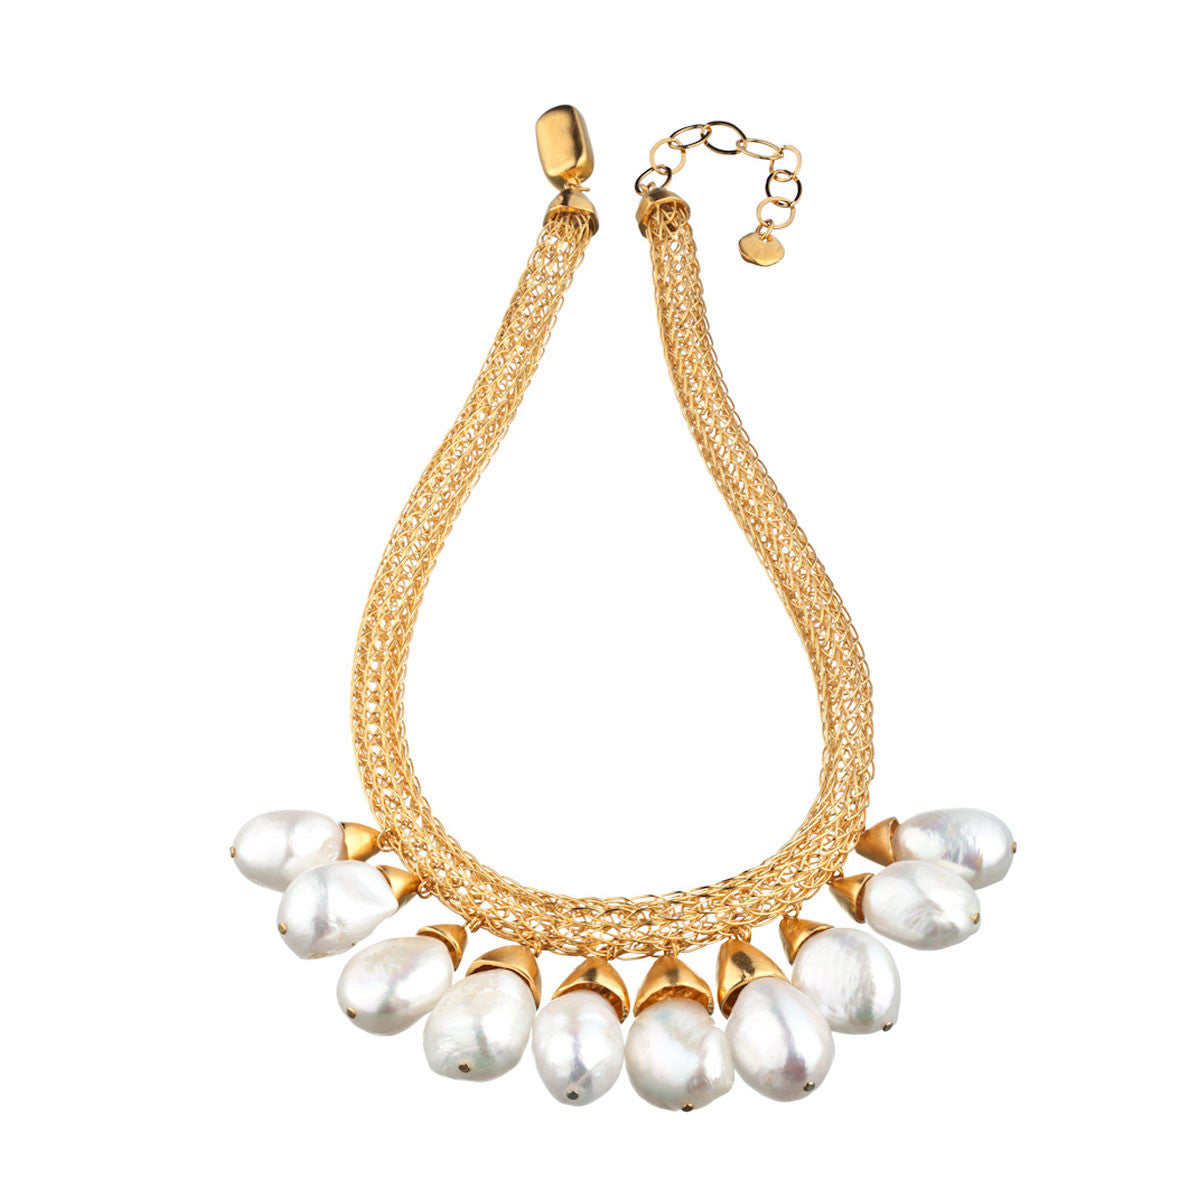 DANGLING PEARLS